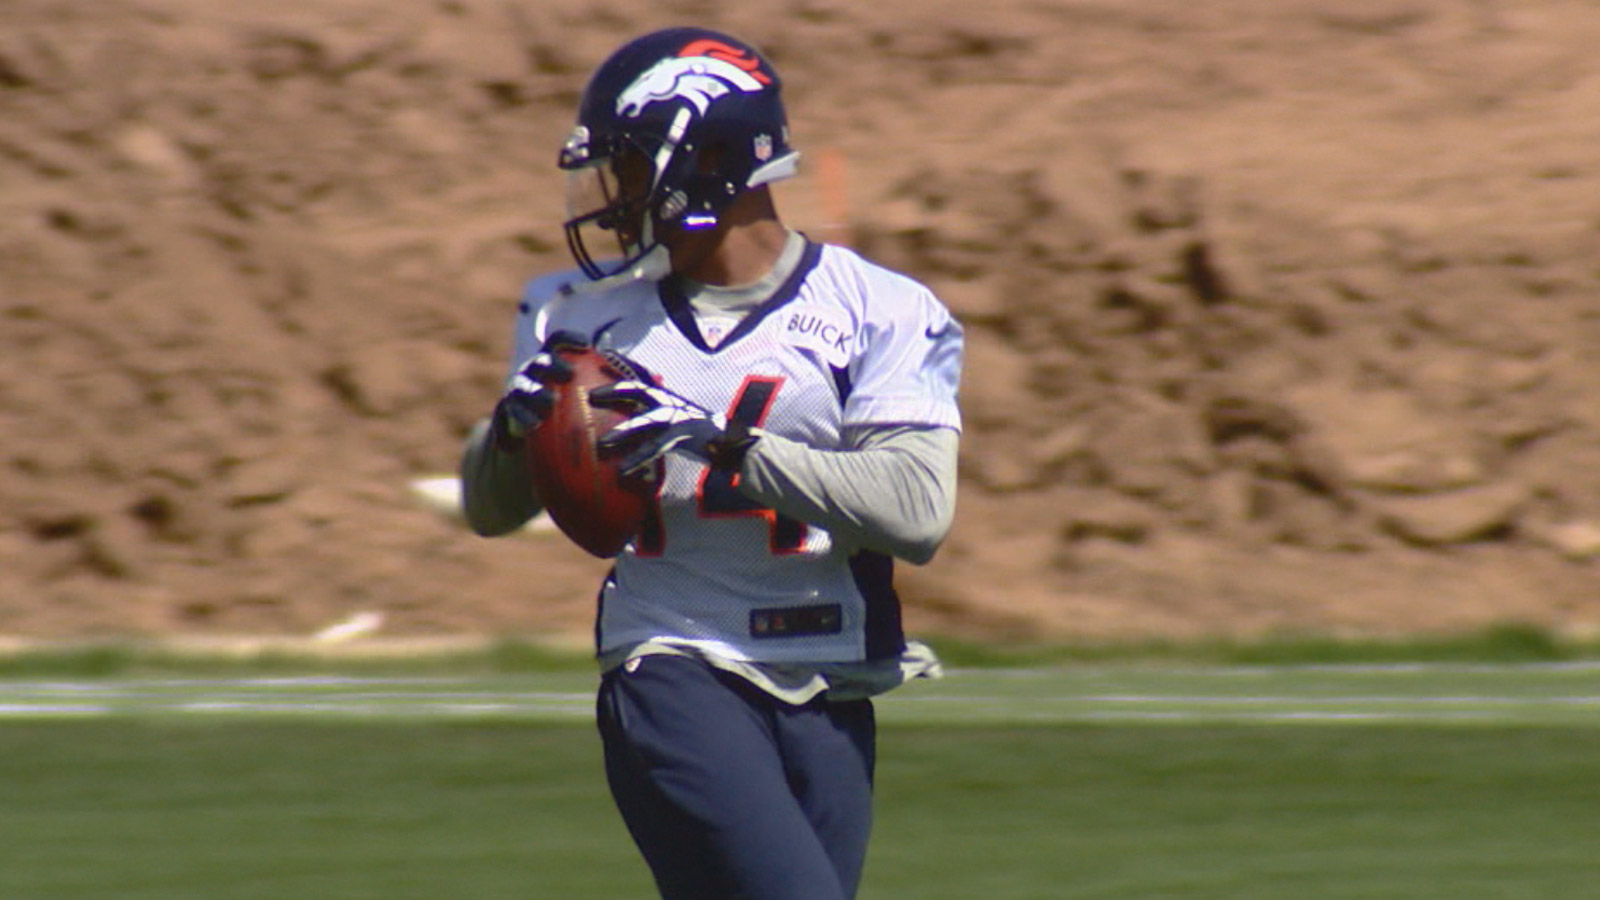 Broncos Rookie Wide Receiver Cody Latimer (credit: CBS)